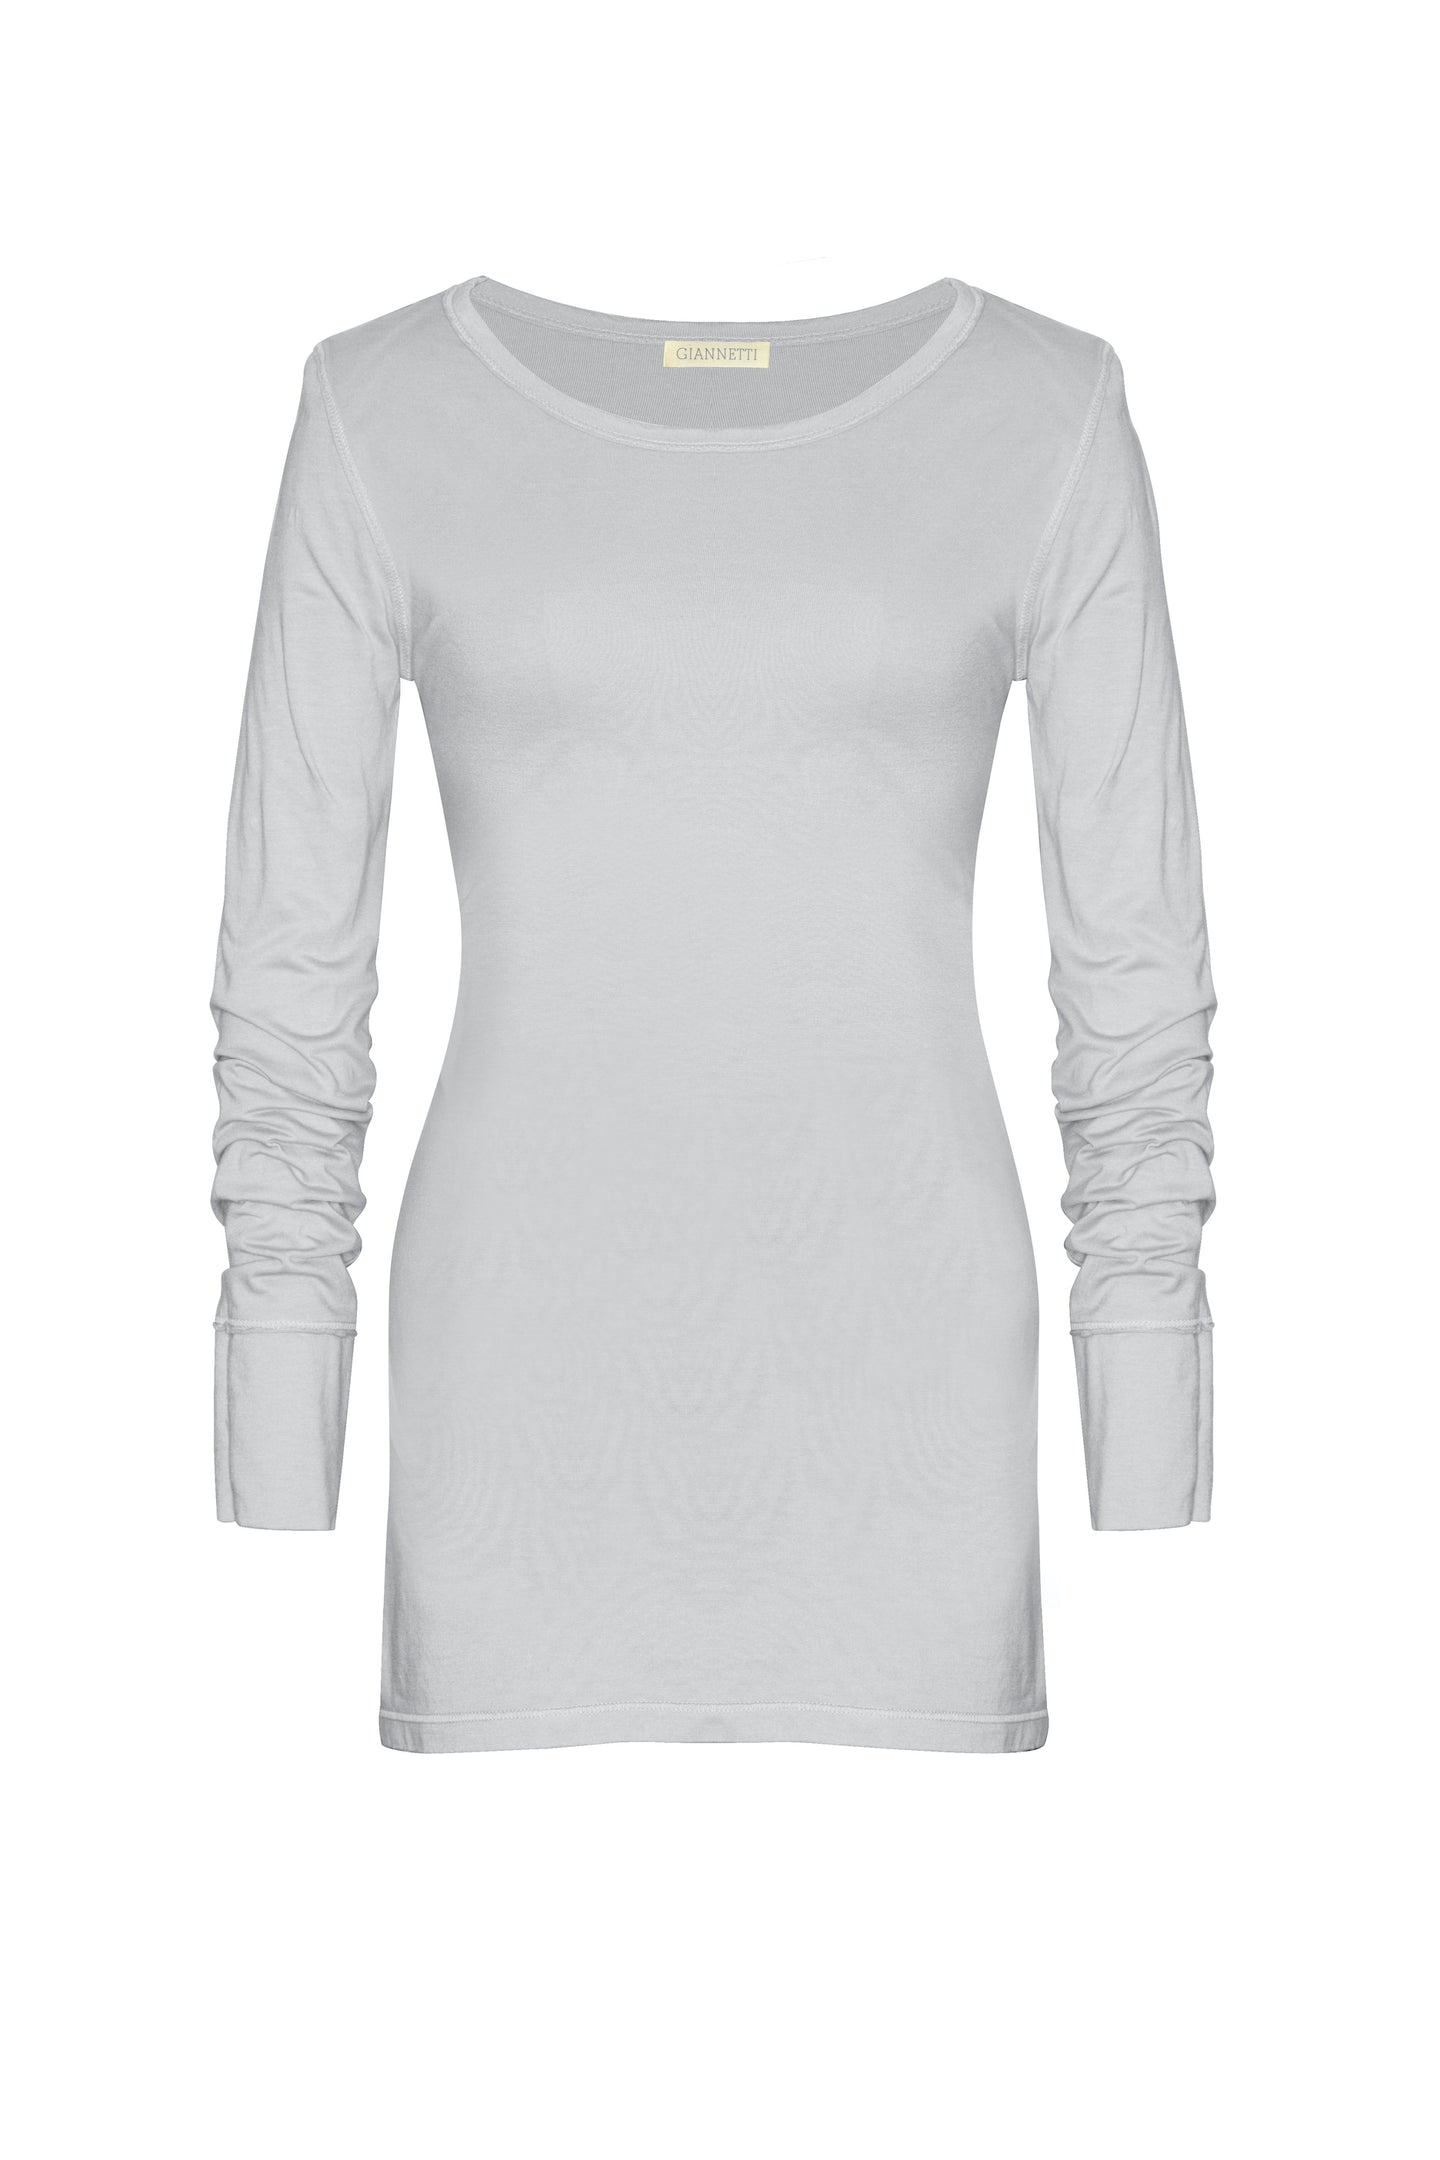 Silver Long Sleeve Tee Shirt